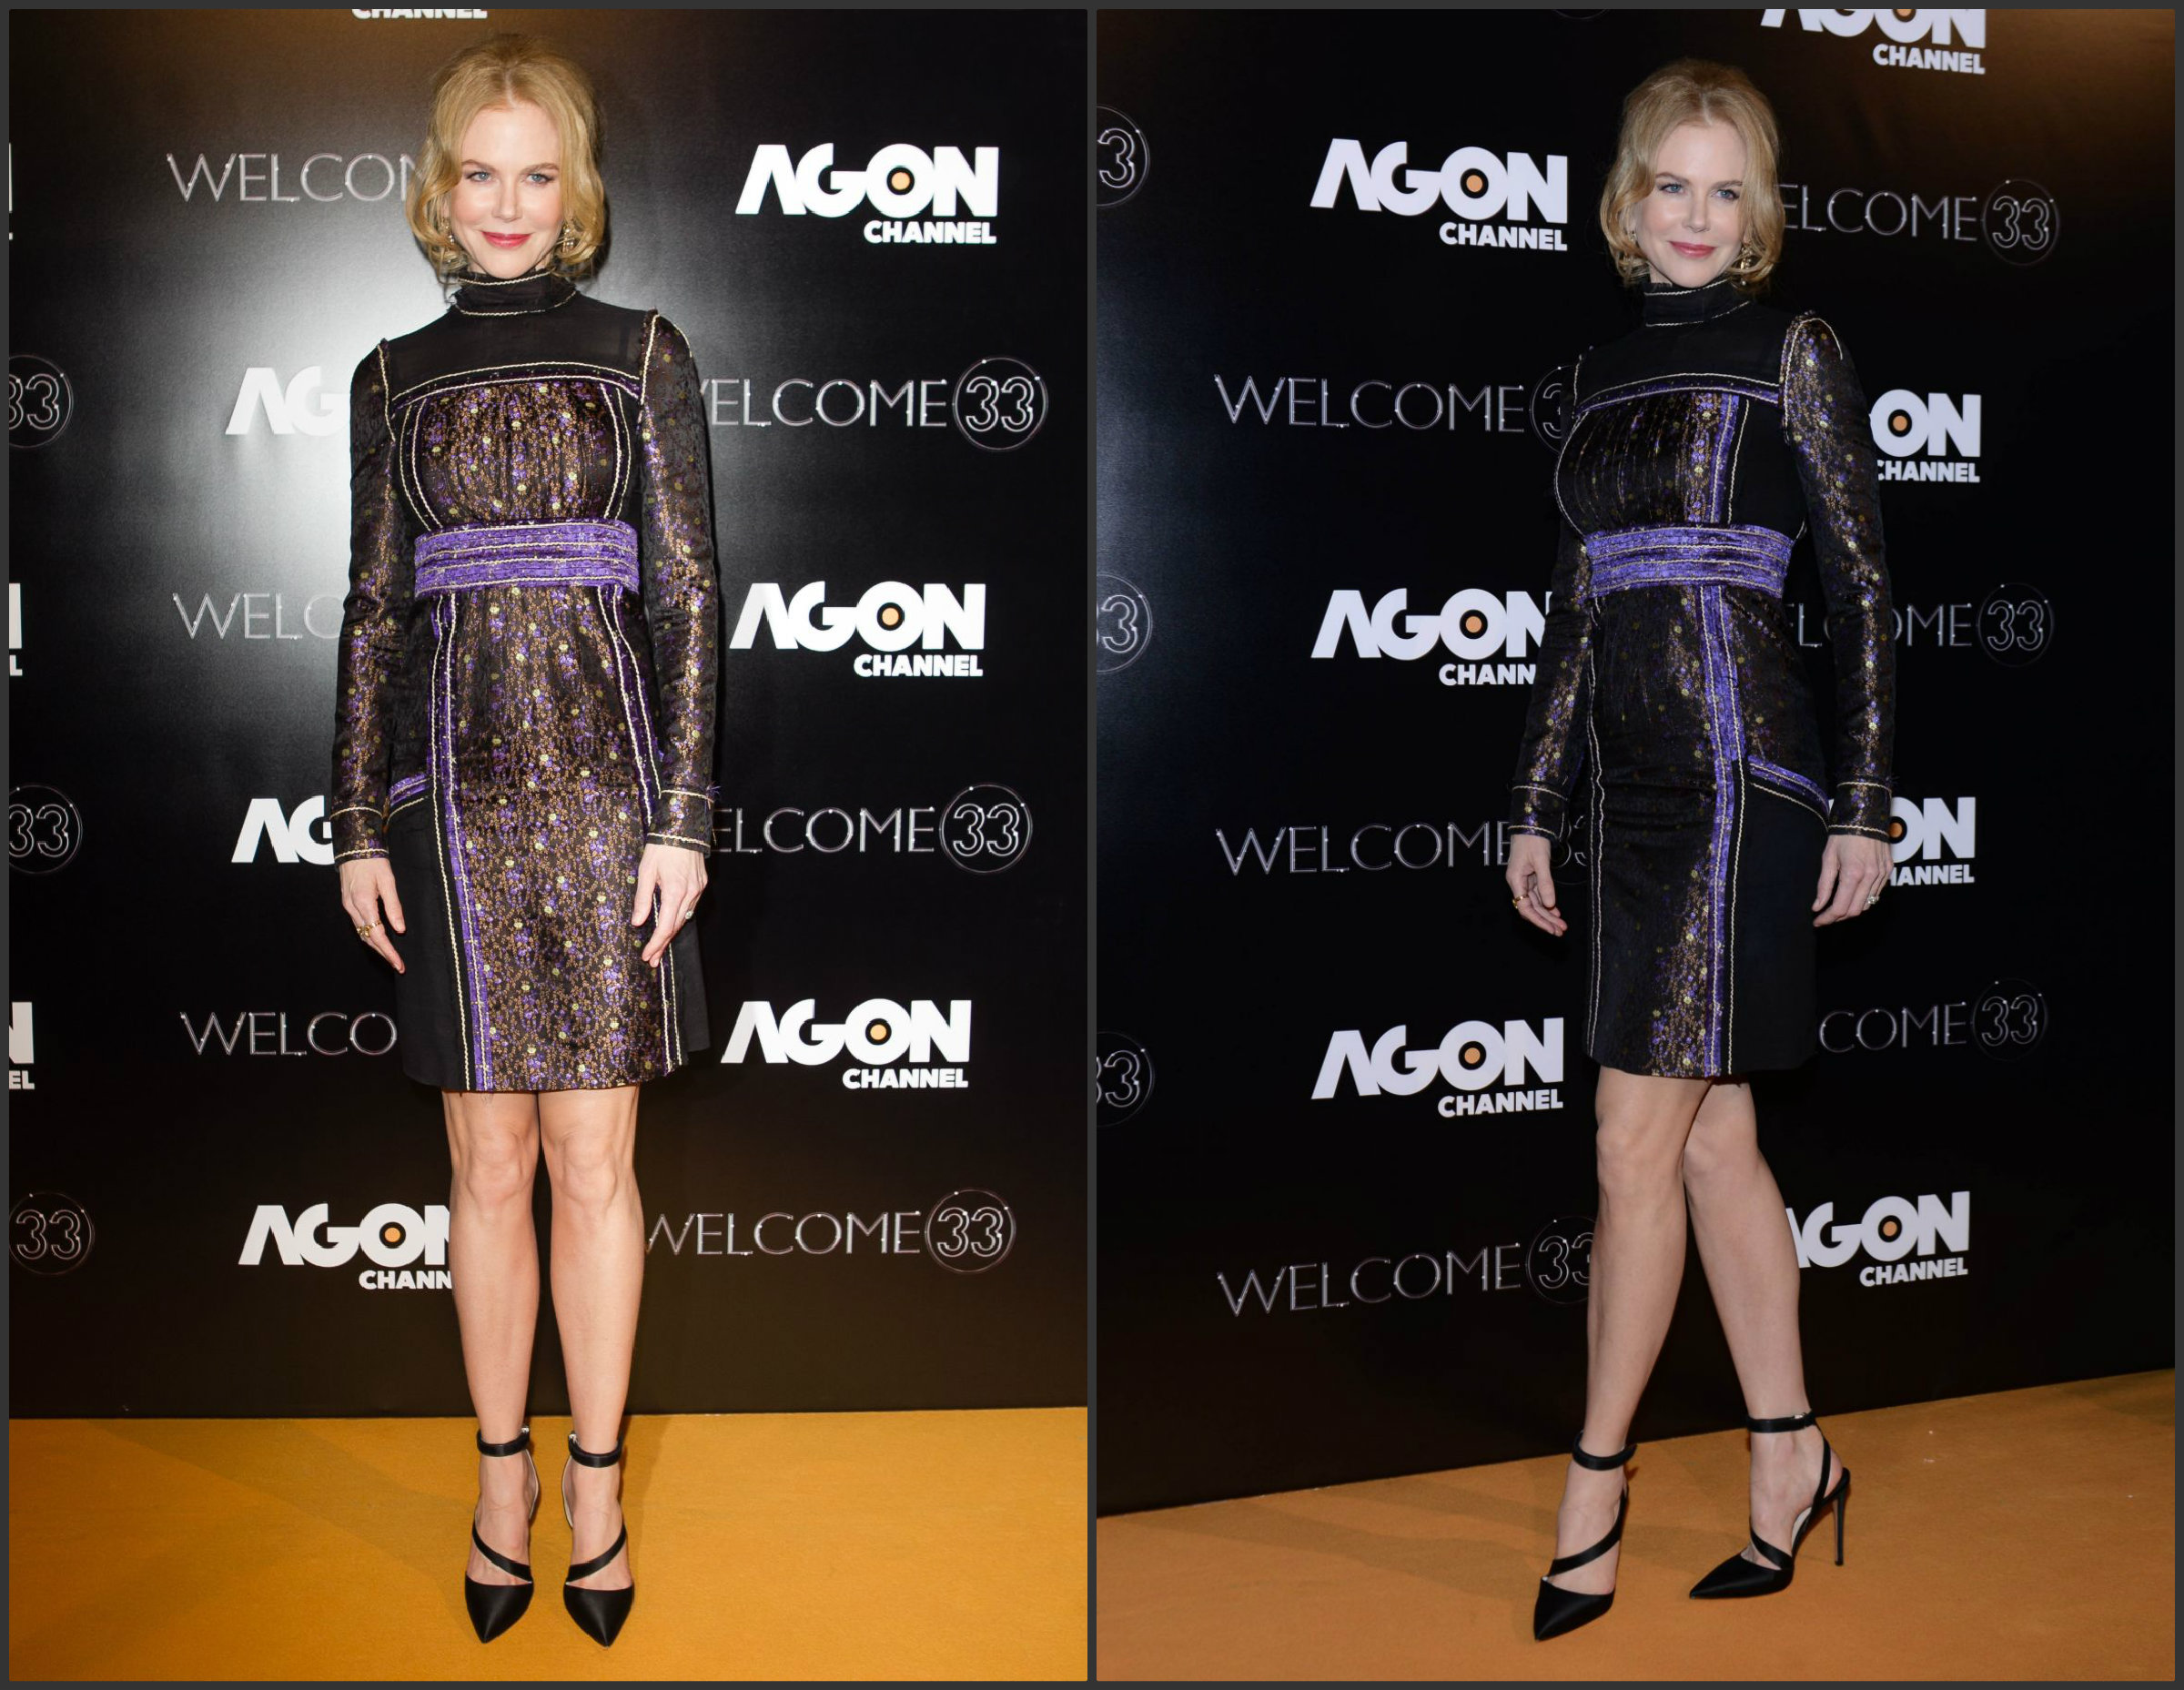 Nicole-Kidman-prada-agon-channel-launch-party